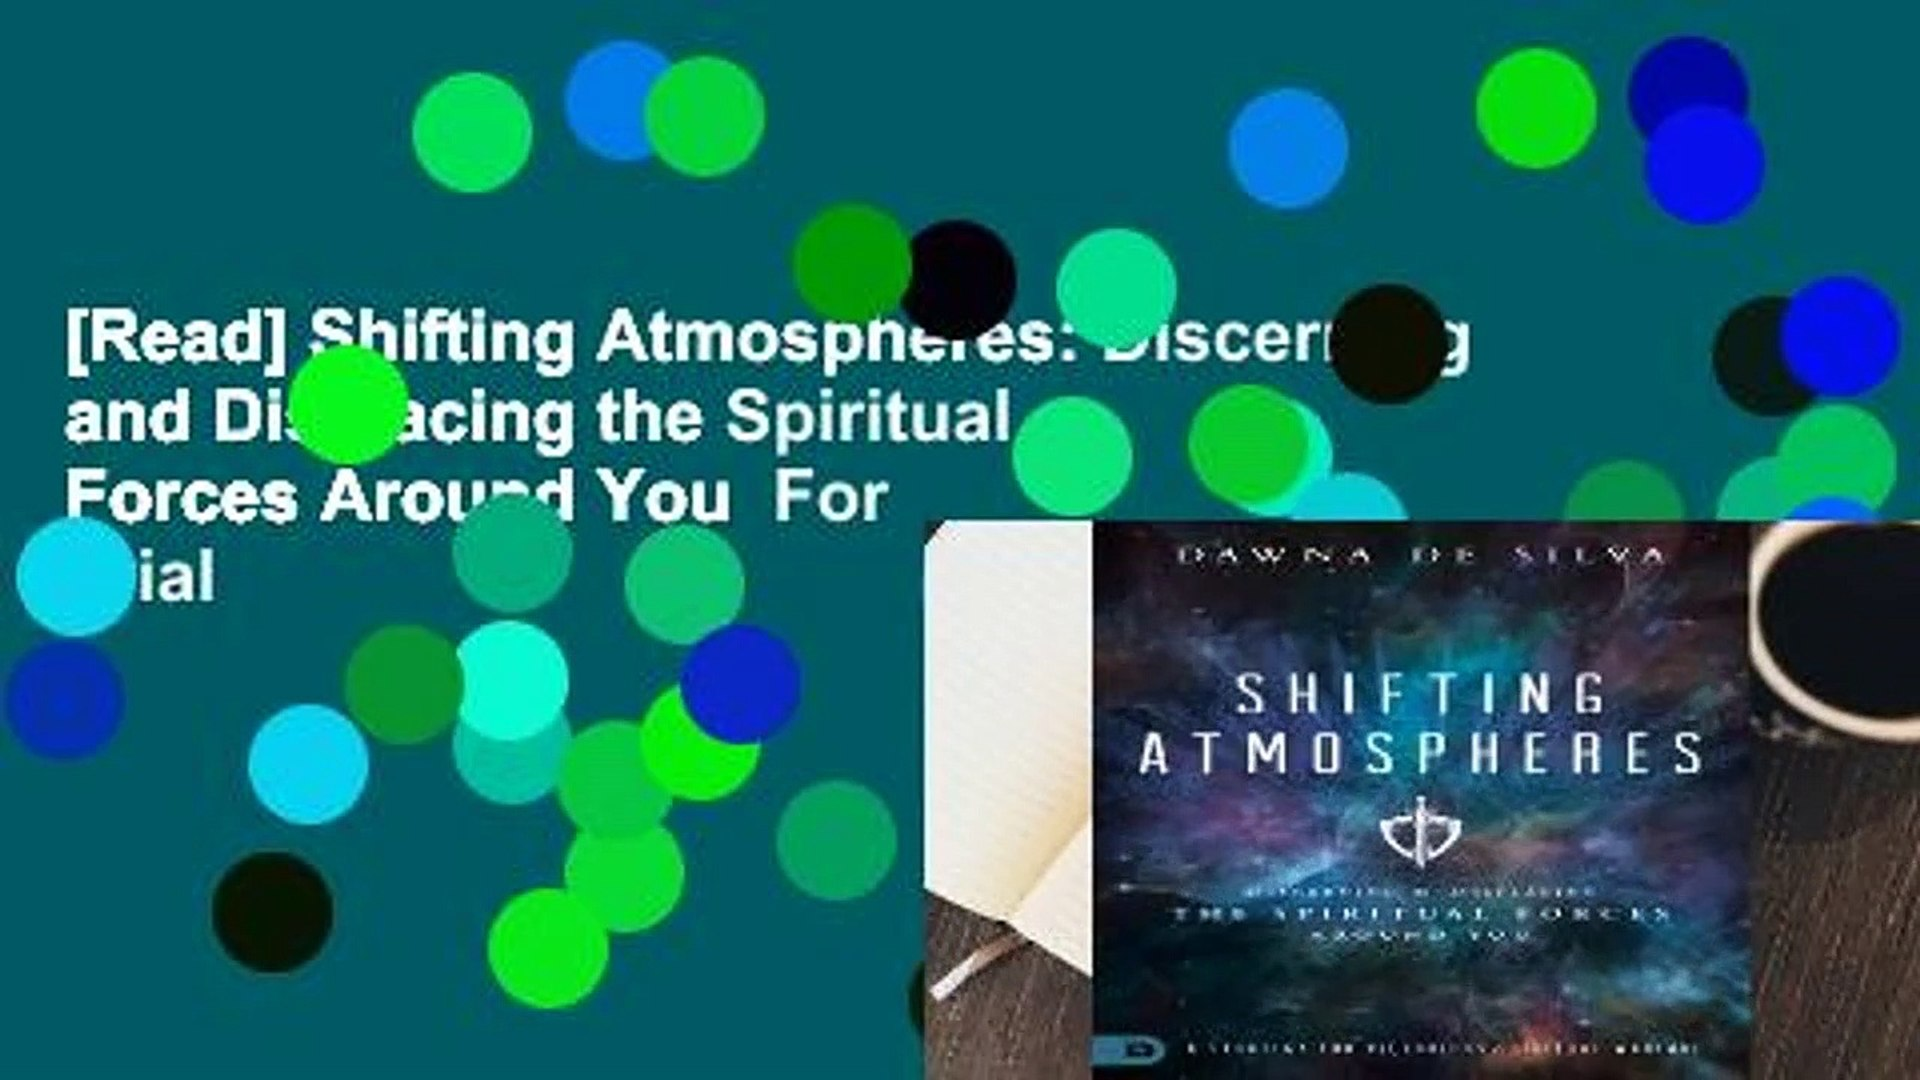 [Read] Shifting Atmospheres: Discerning and Displacing the Spiritual Forces Around You  For Trial